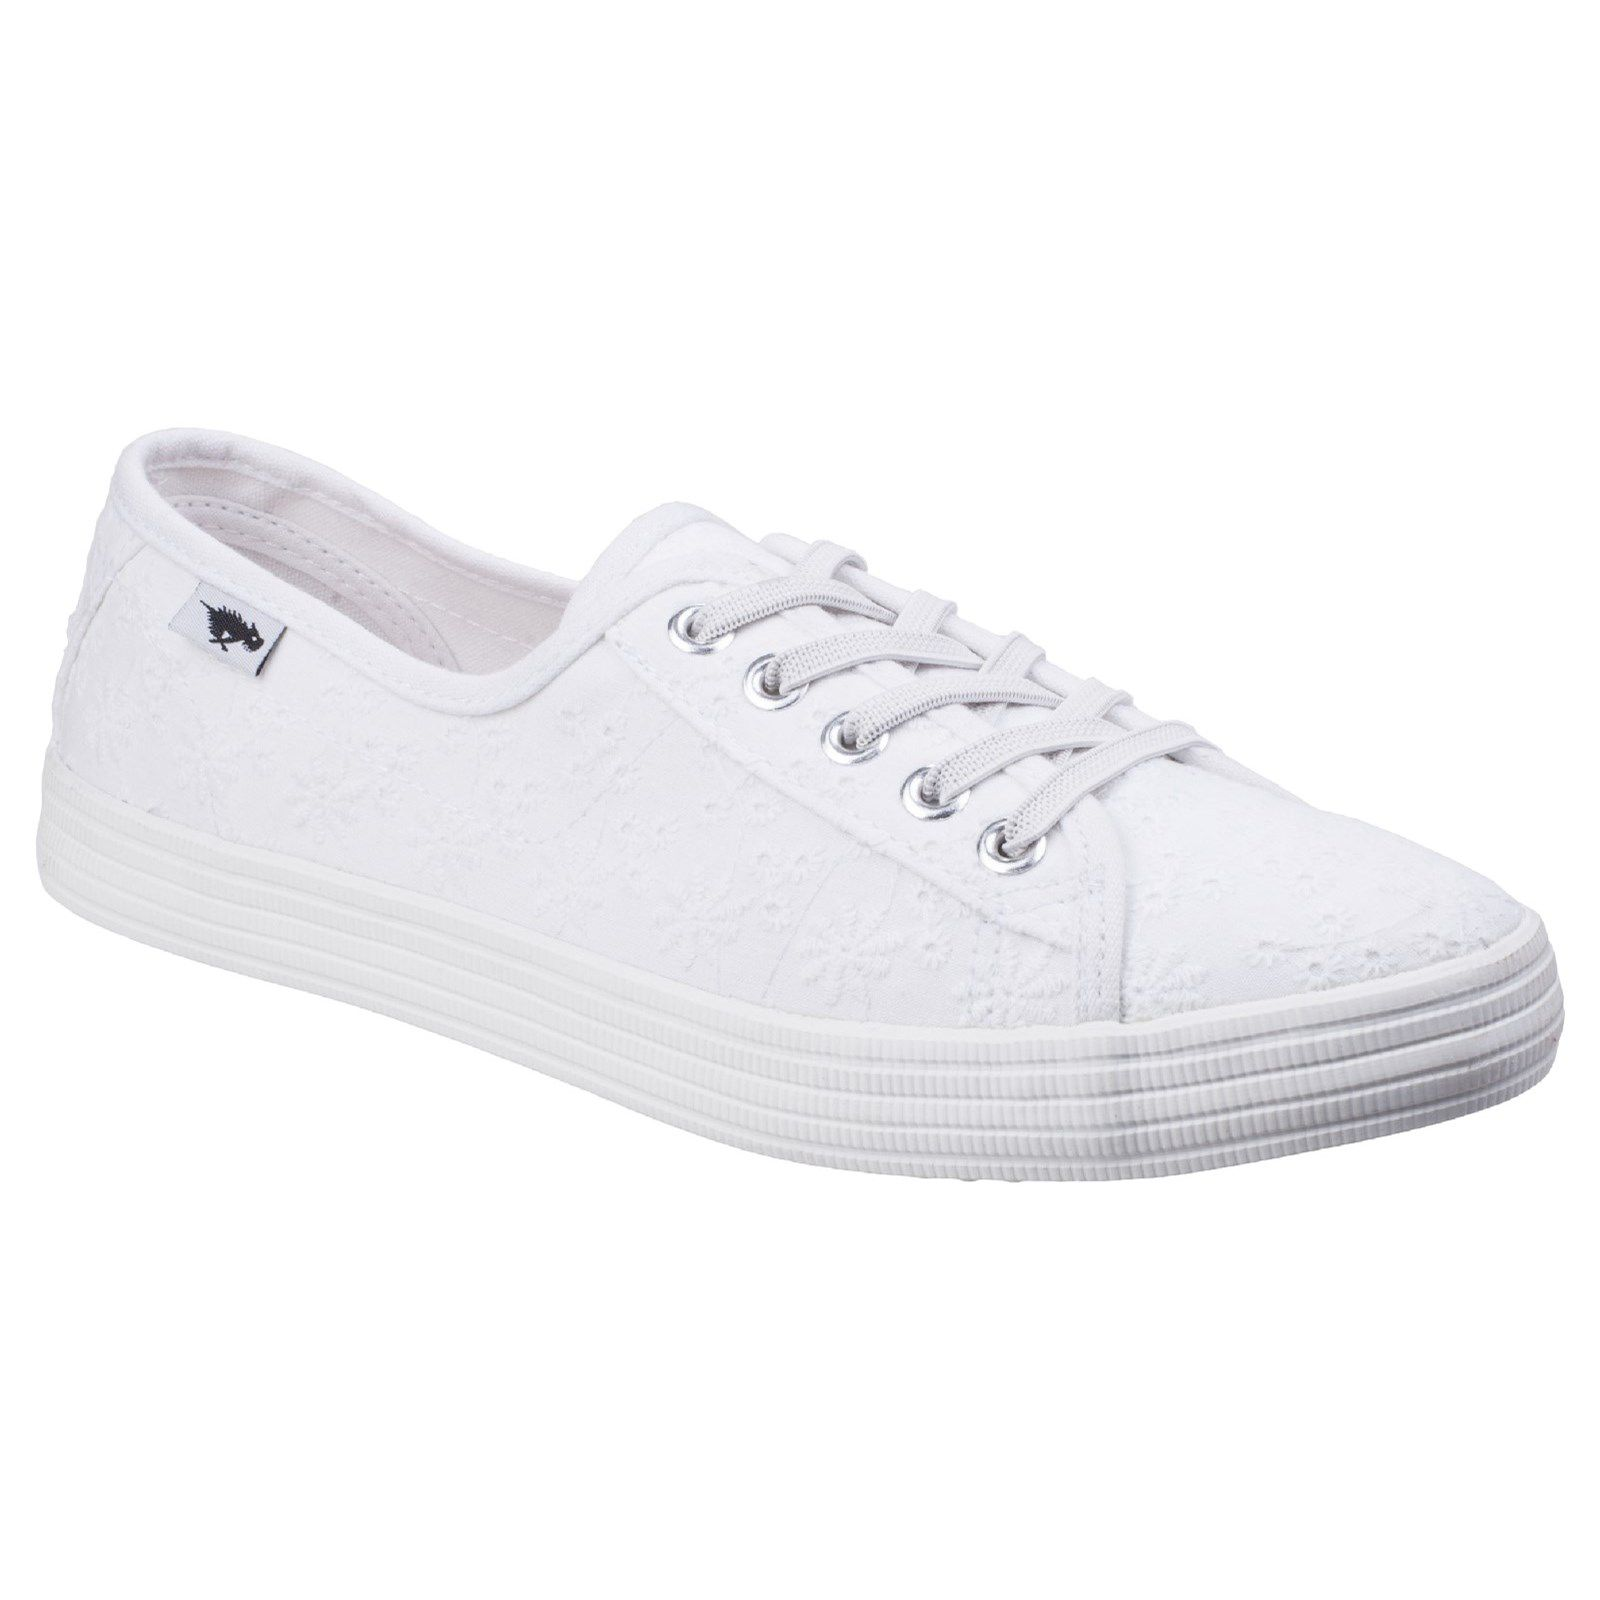 Rocket Dog Chow Chow Lucky Eyelet Lace-Up Trainer, White